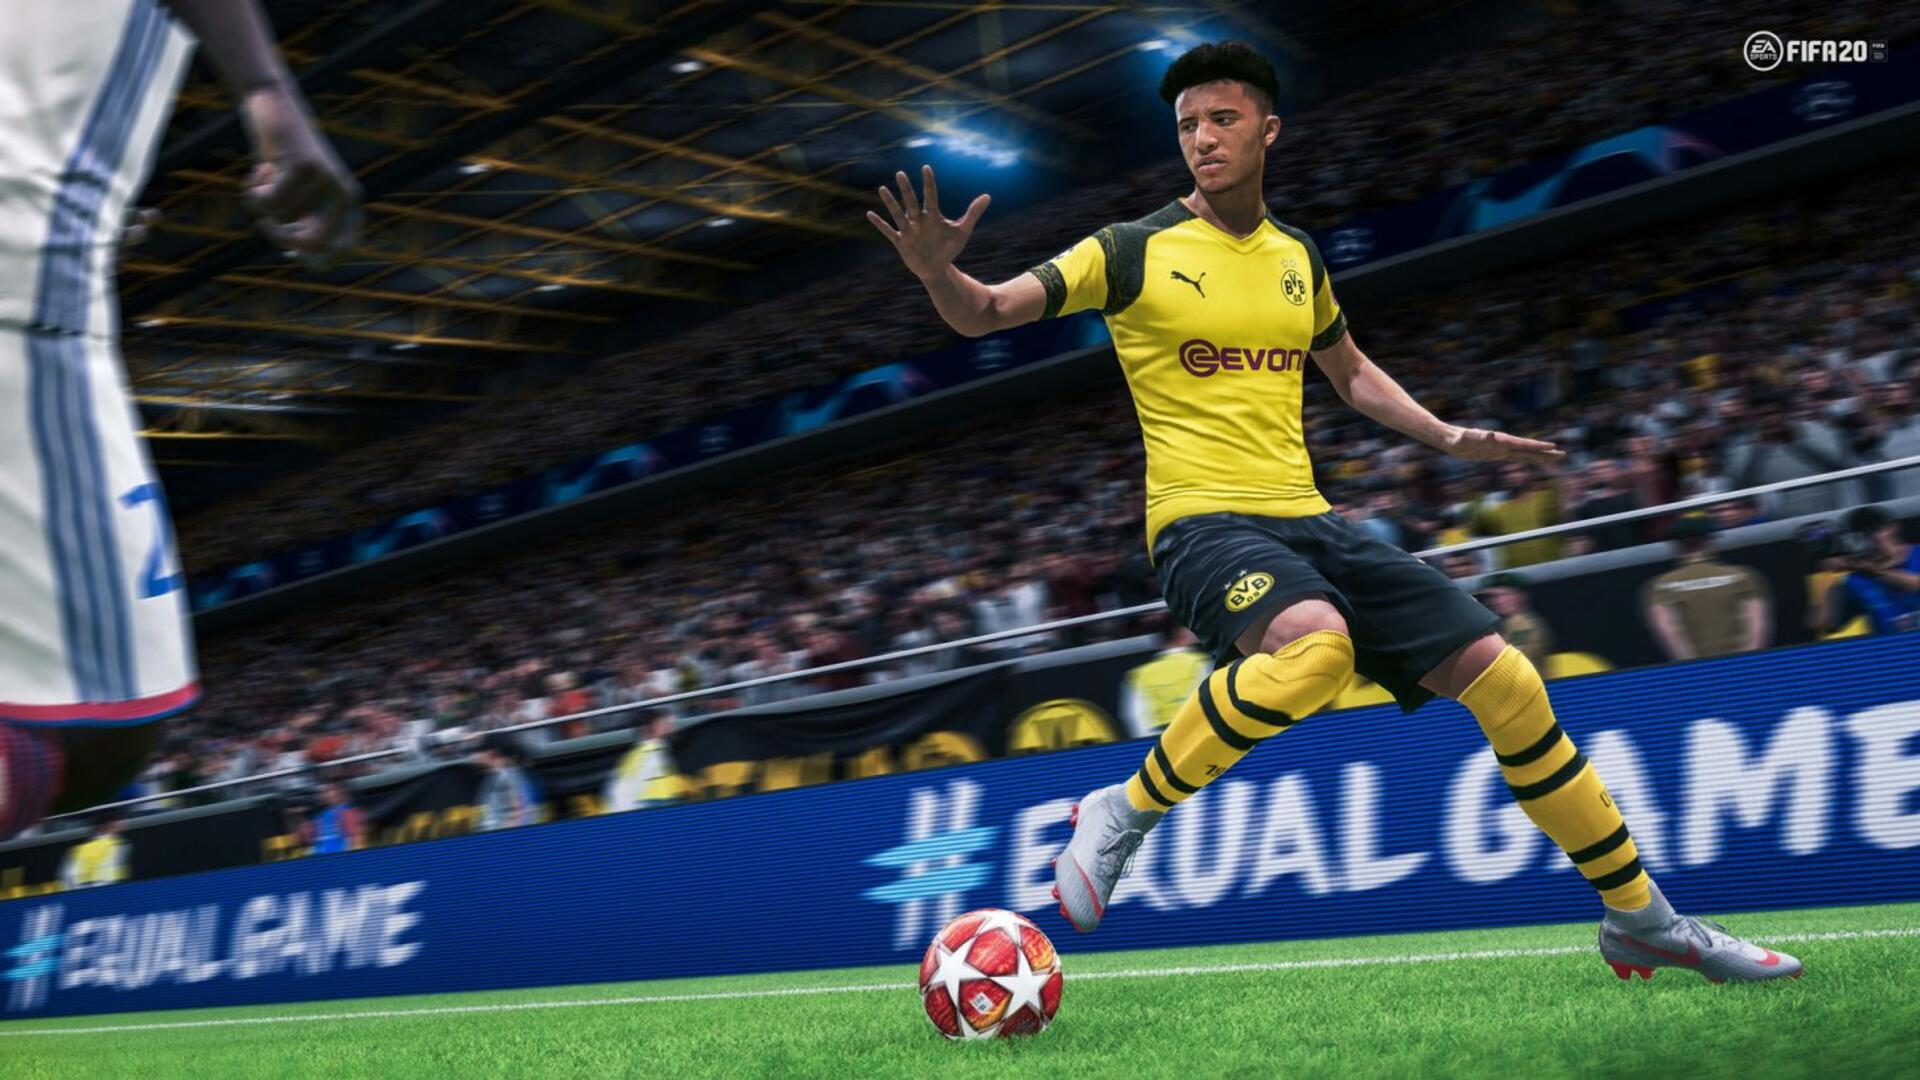 FIFA 20 Release Date - Gameplay Changes, Cover Star, FIFA Volta, PC Specs